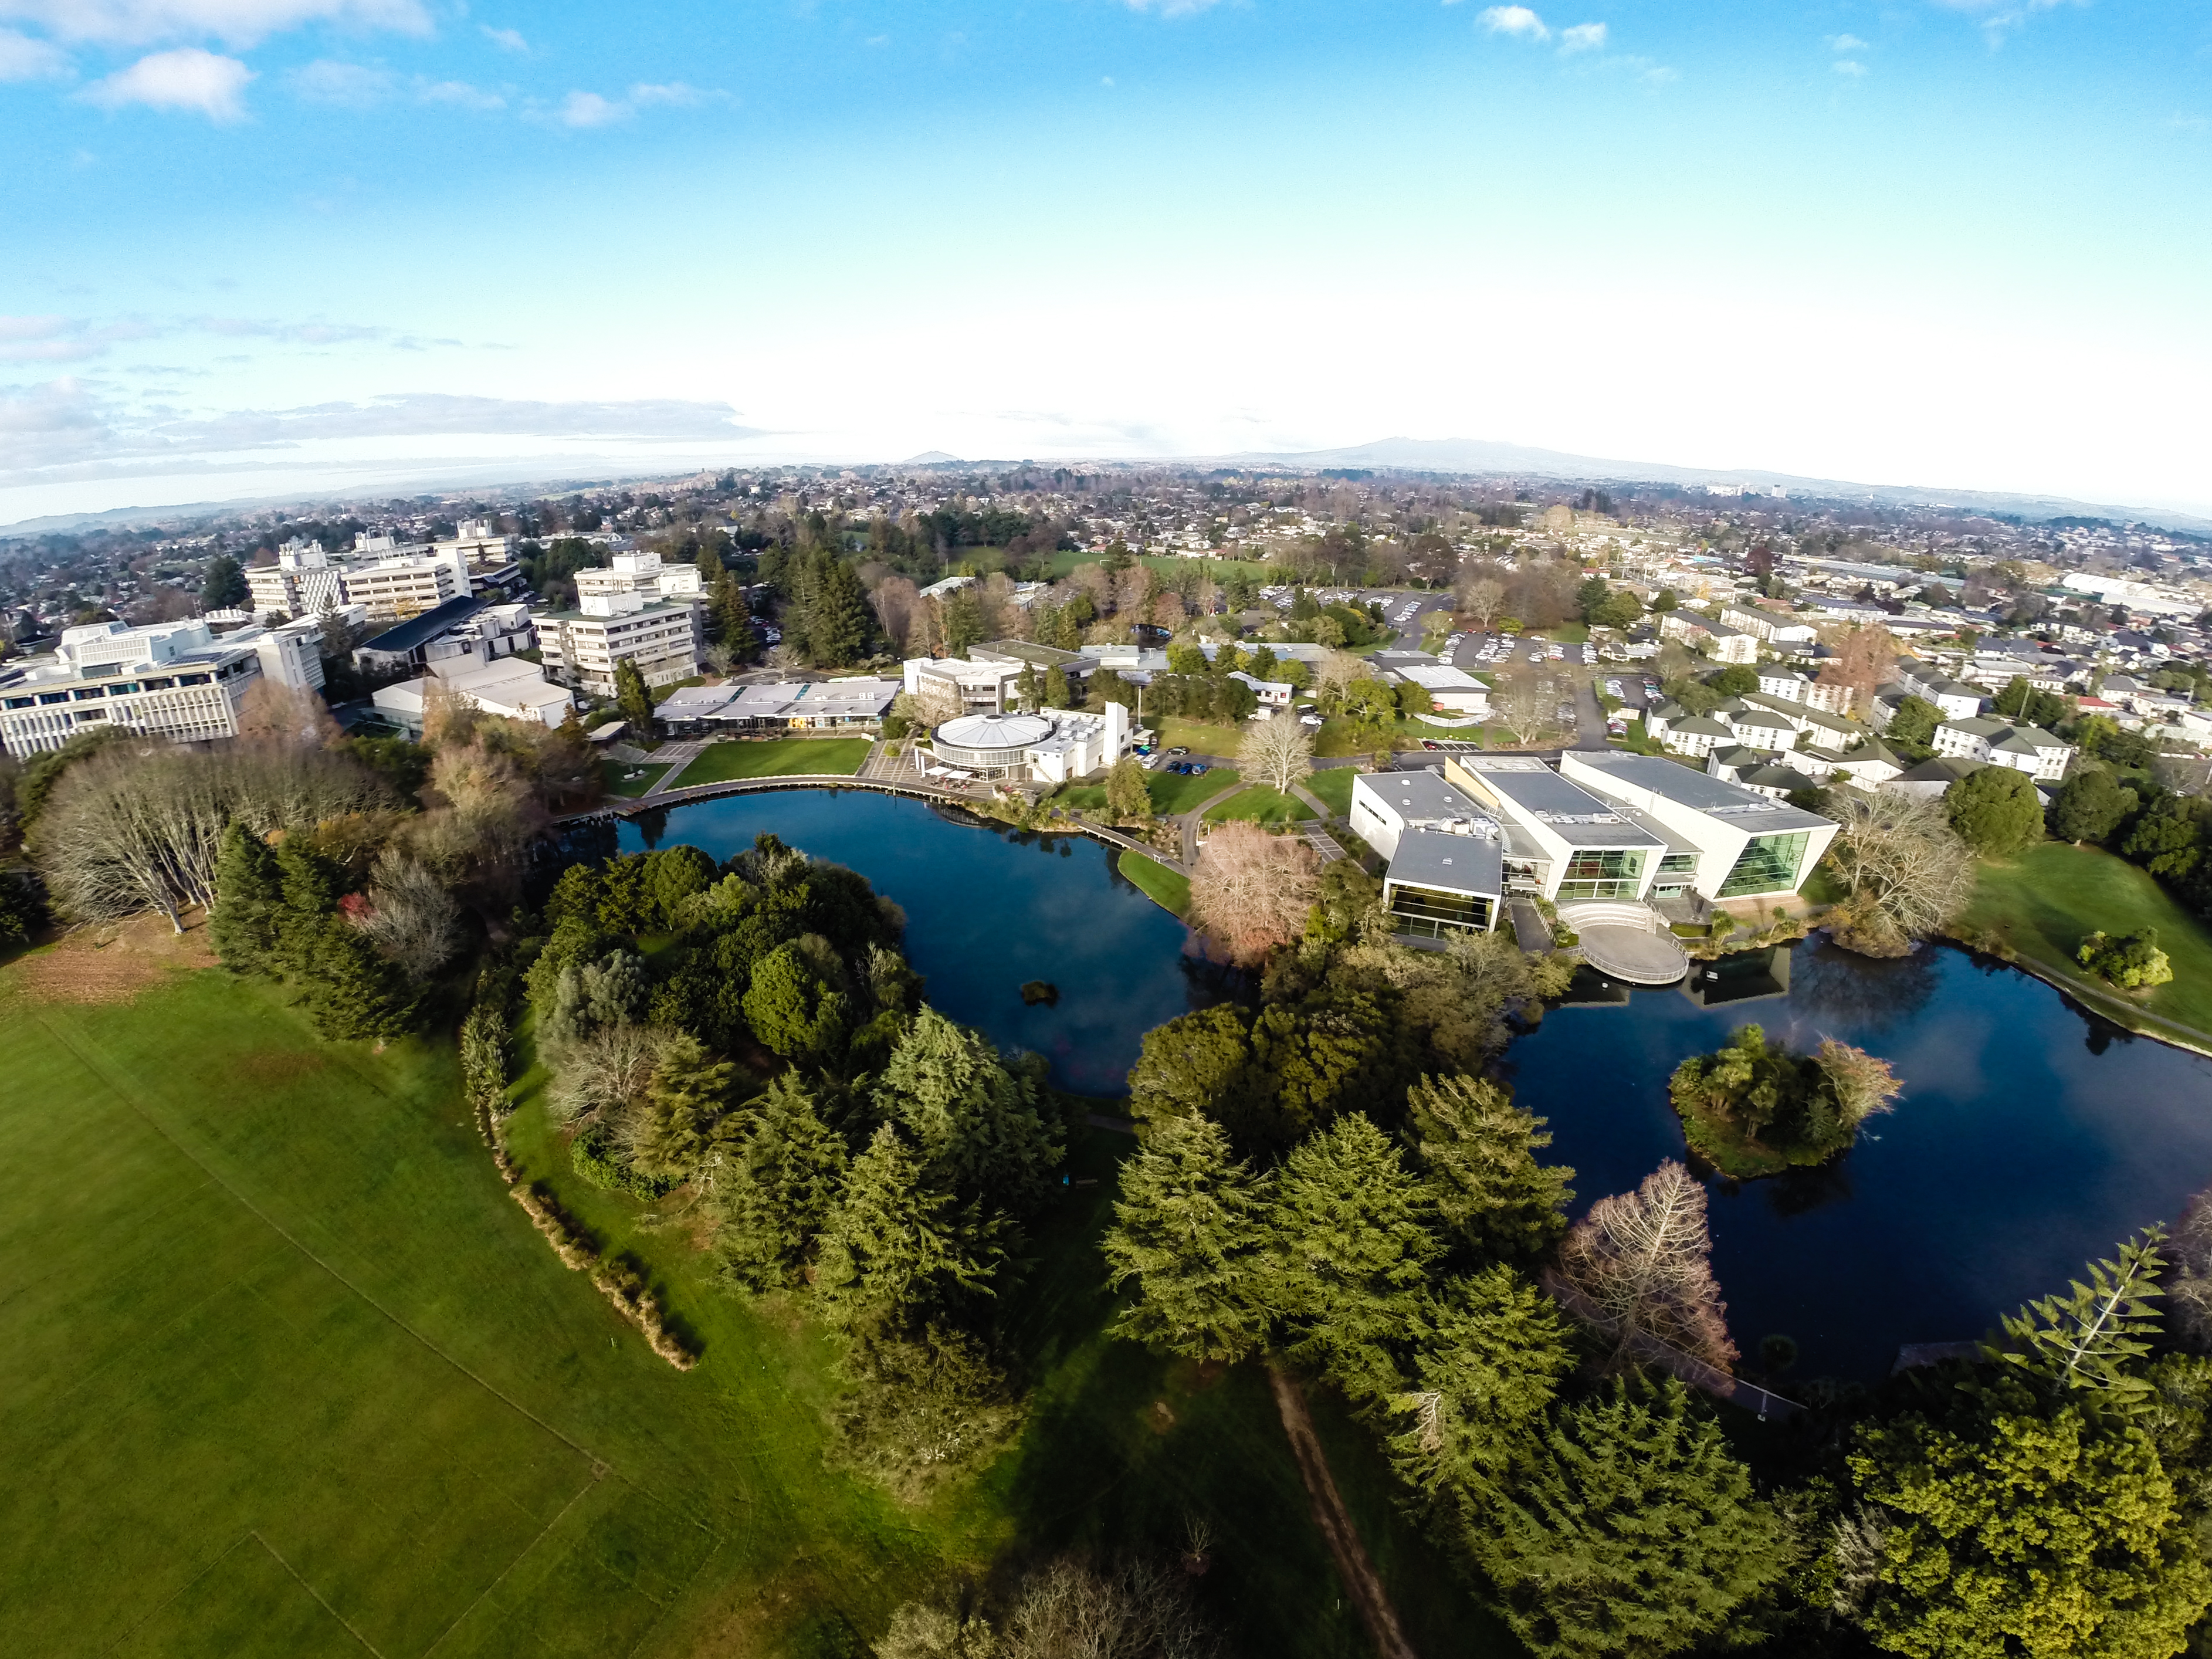 UoW Drone picture